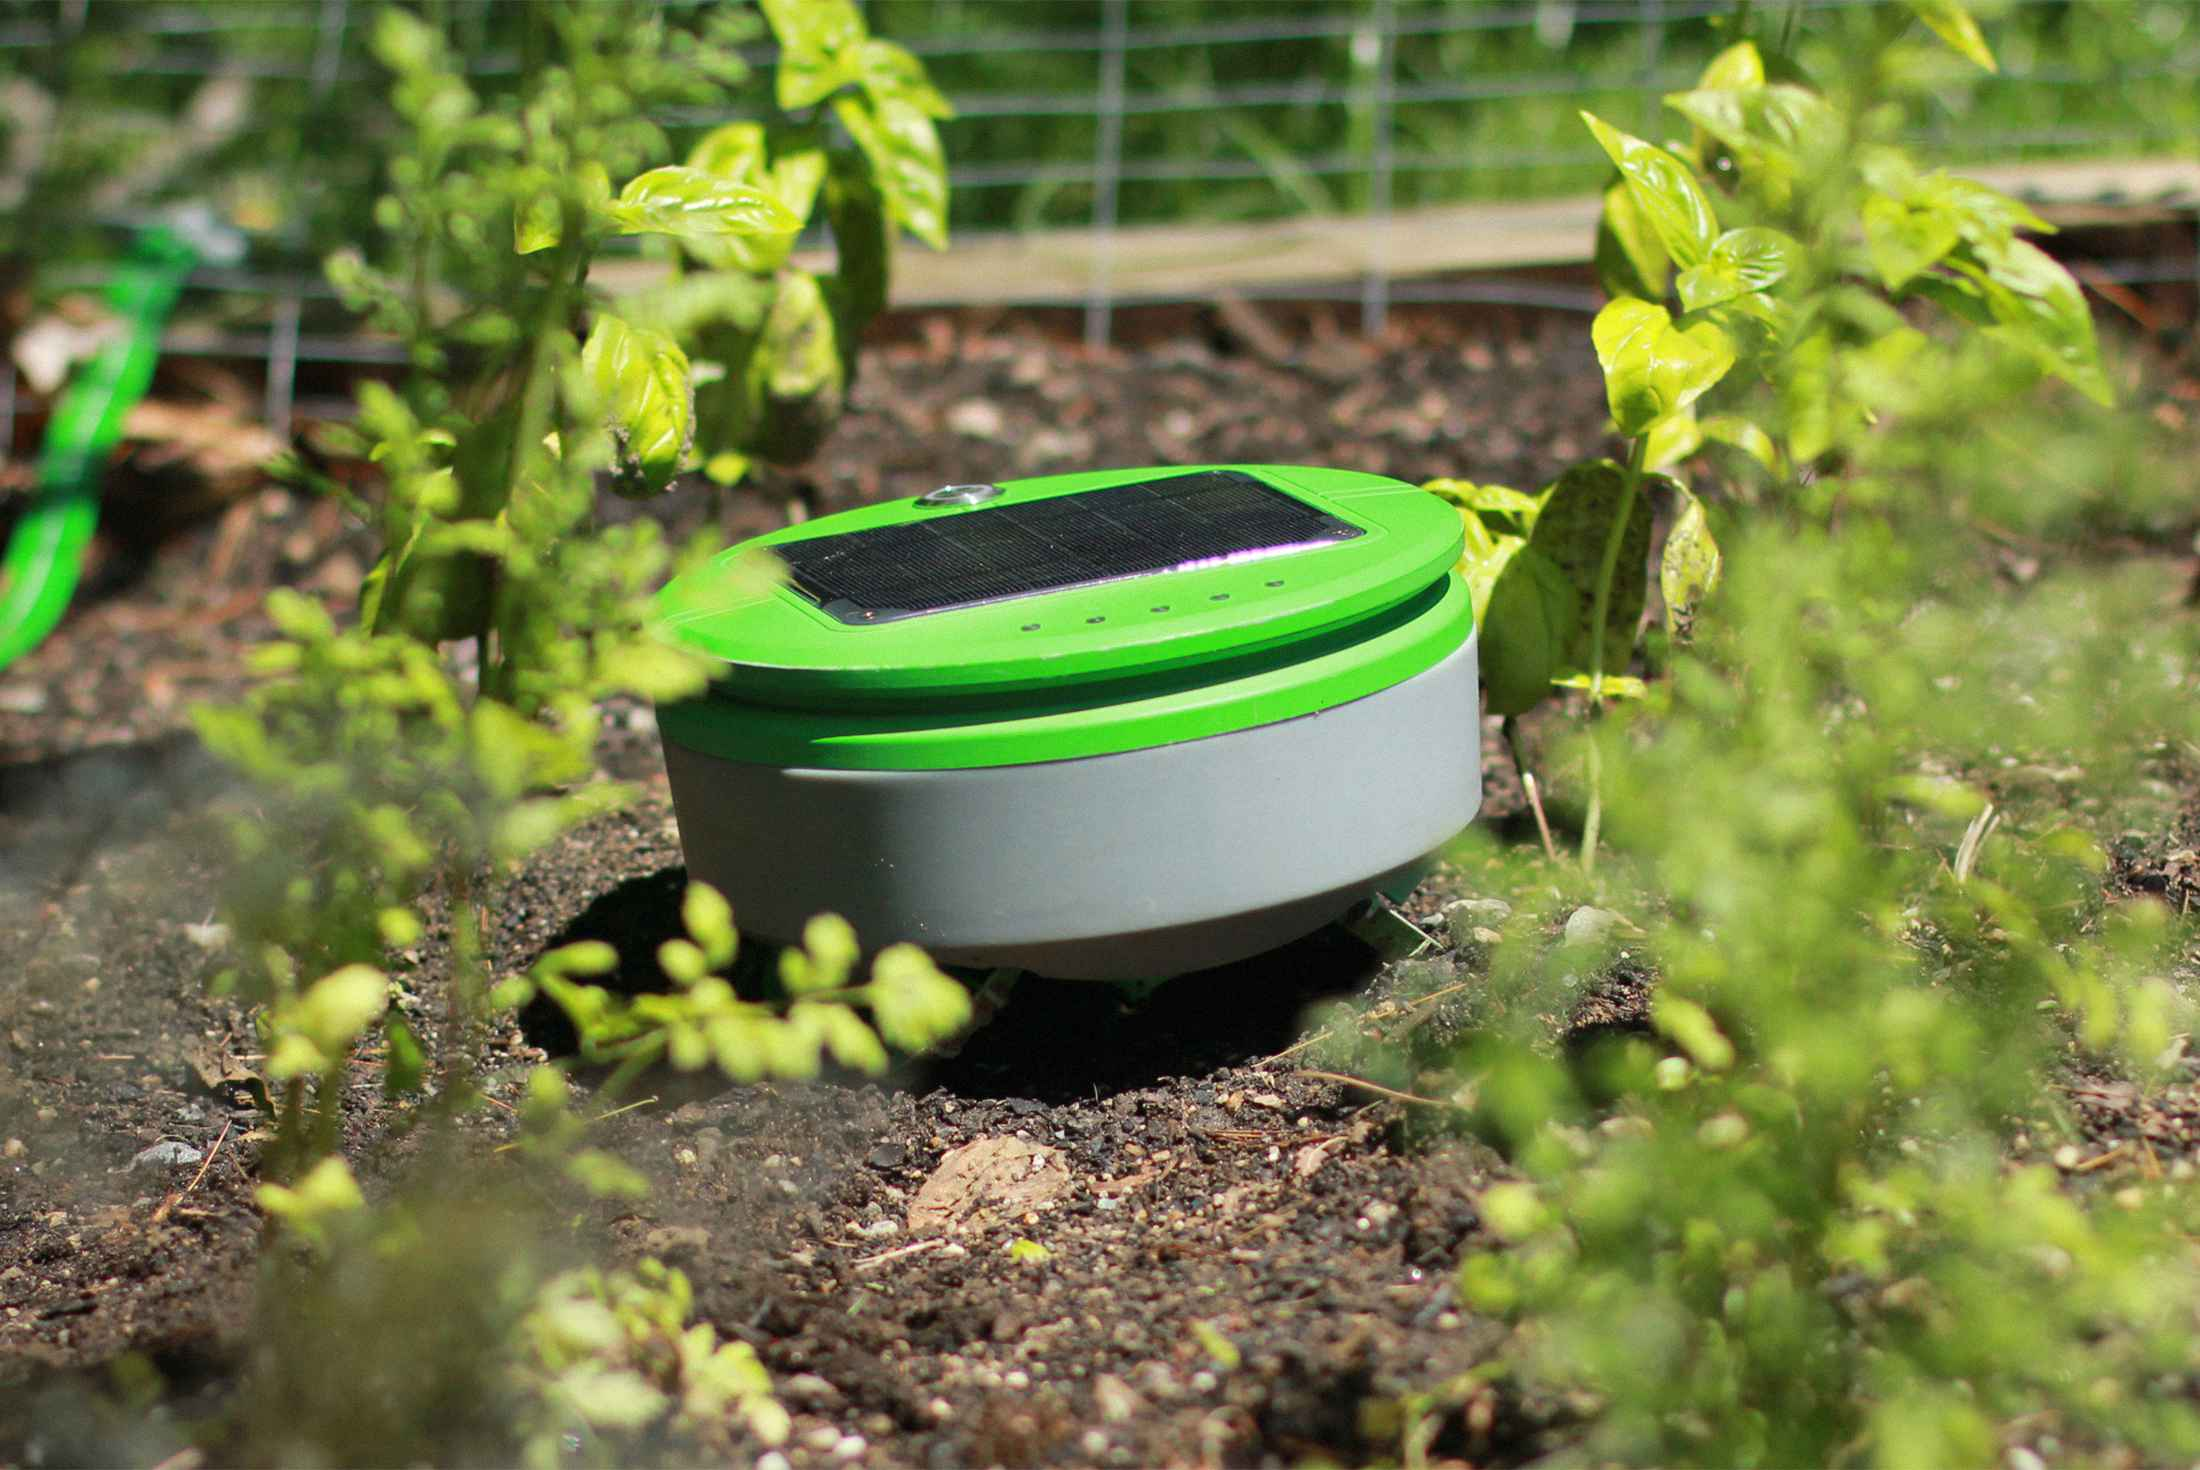 This $300 Robot Can Weed Your Garden